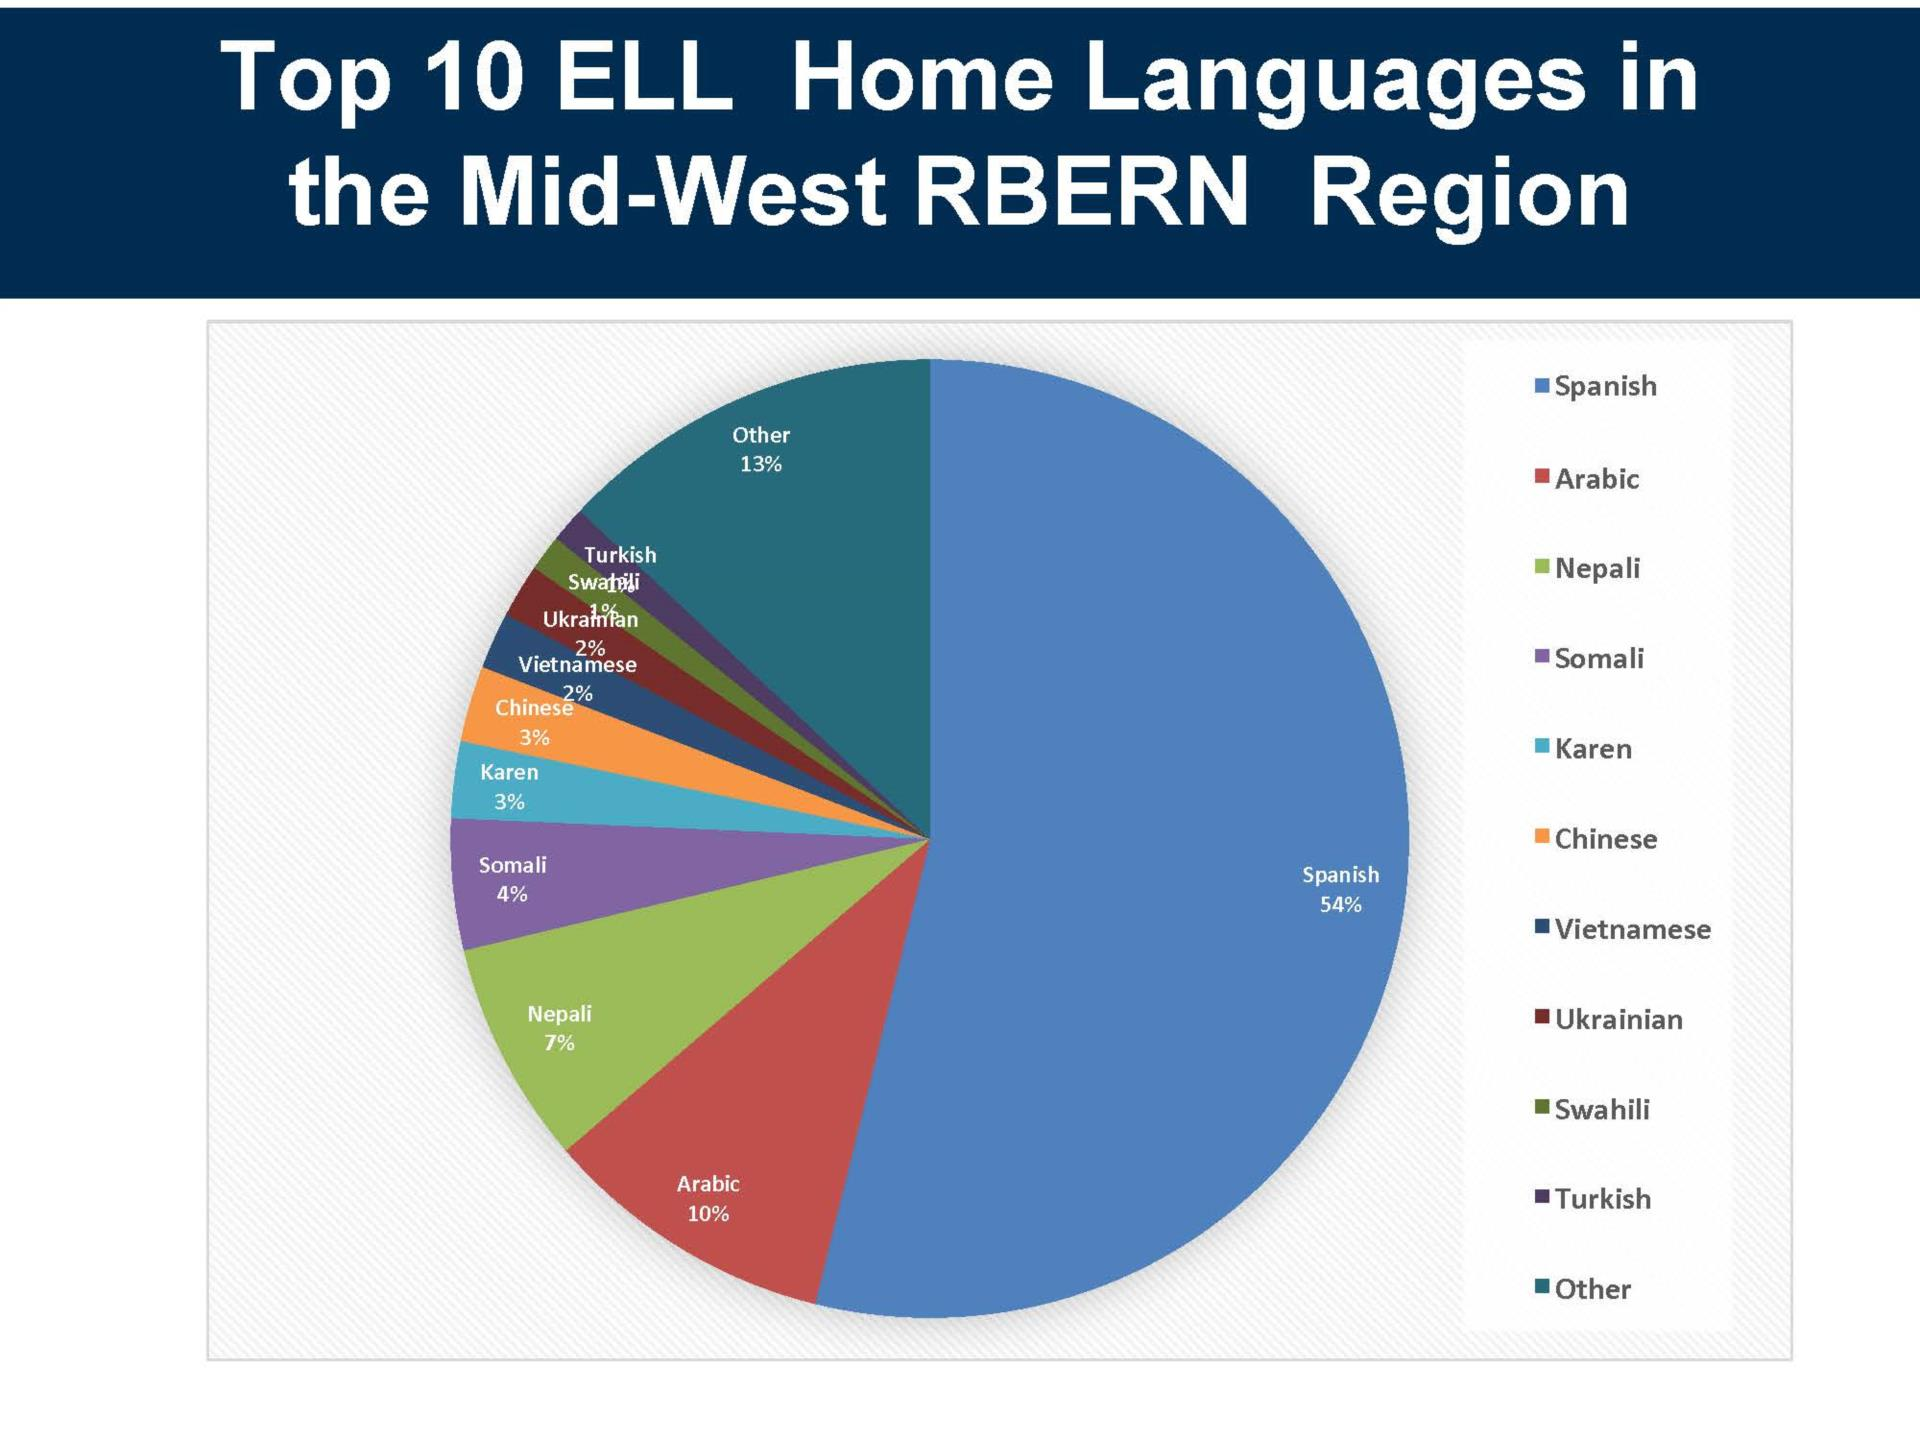 Chart showing top 10 languages in the RBERN region